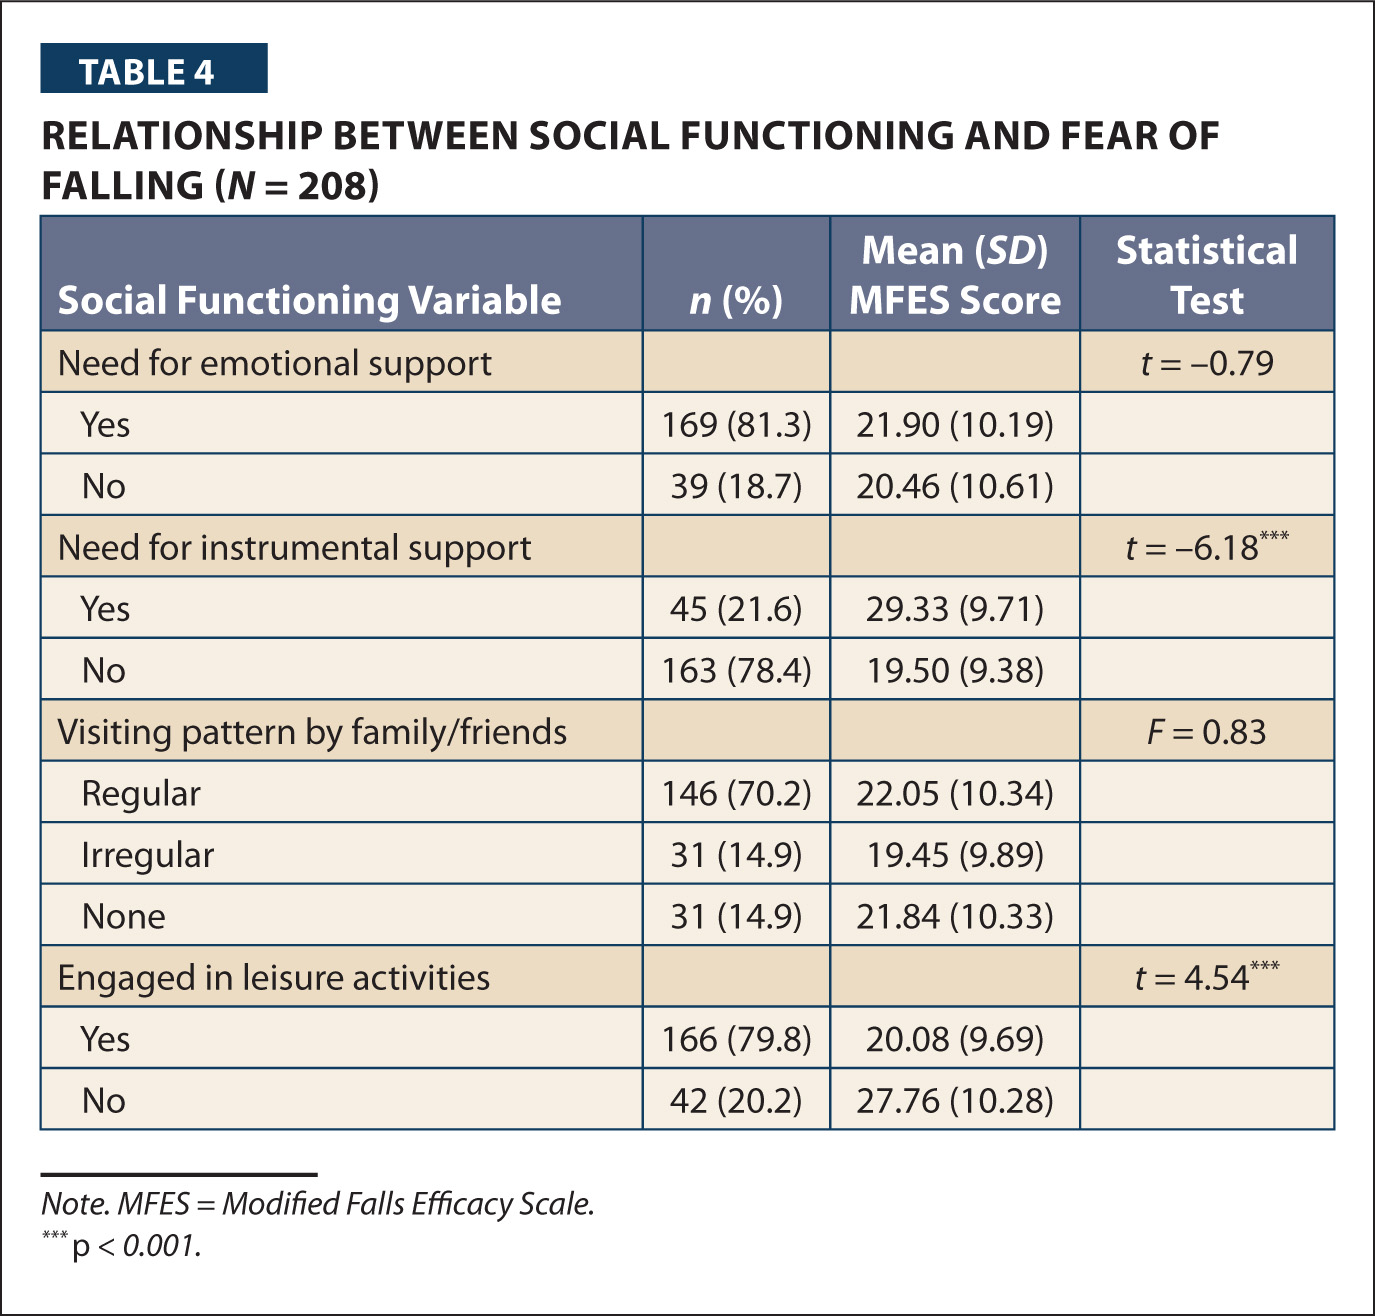 Relationship Between Social Functioning and Fear of Falling (N = 208)